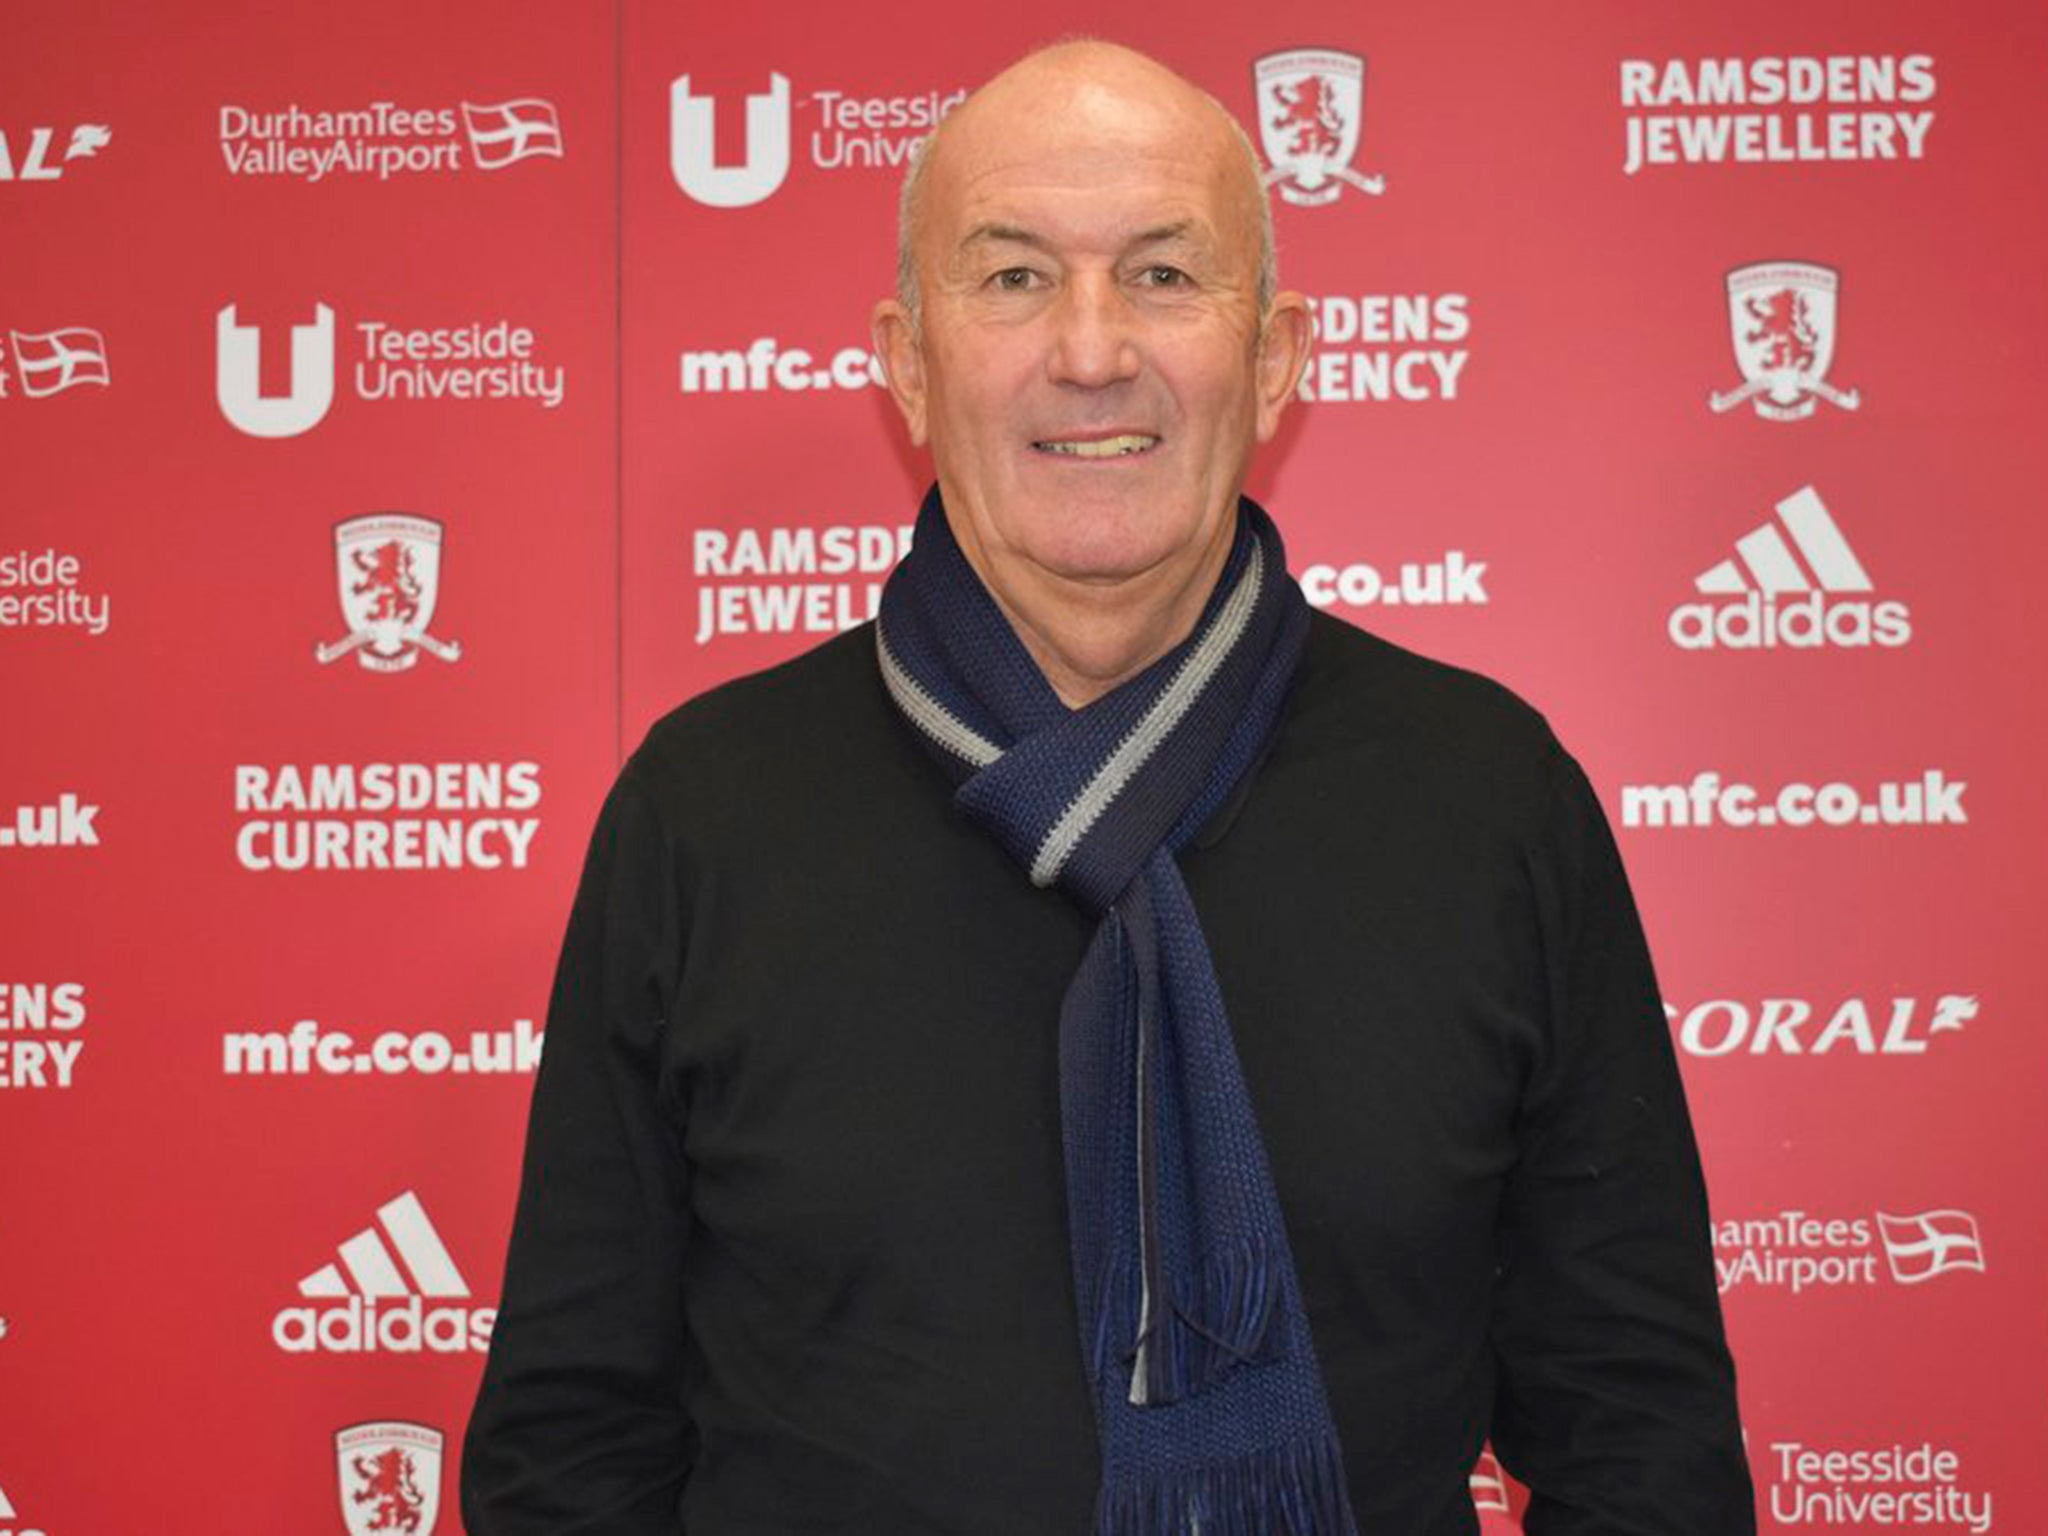 Tony Pulis - latest news, breaking stories and comment - The Independent